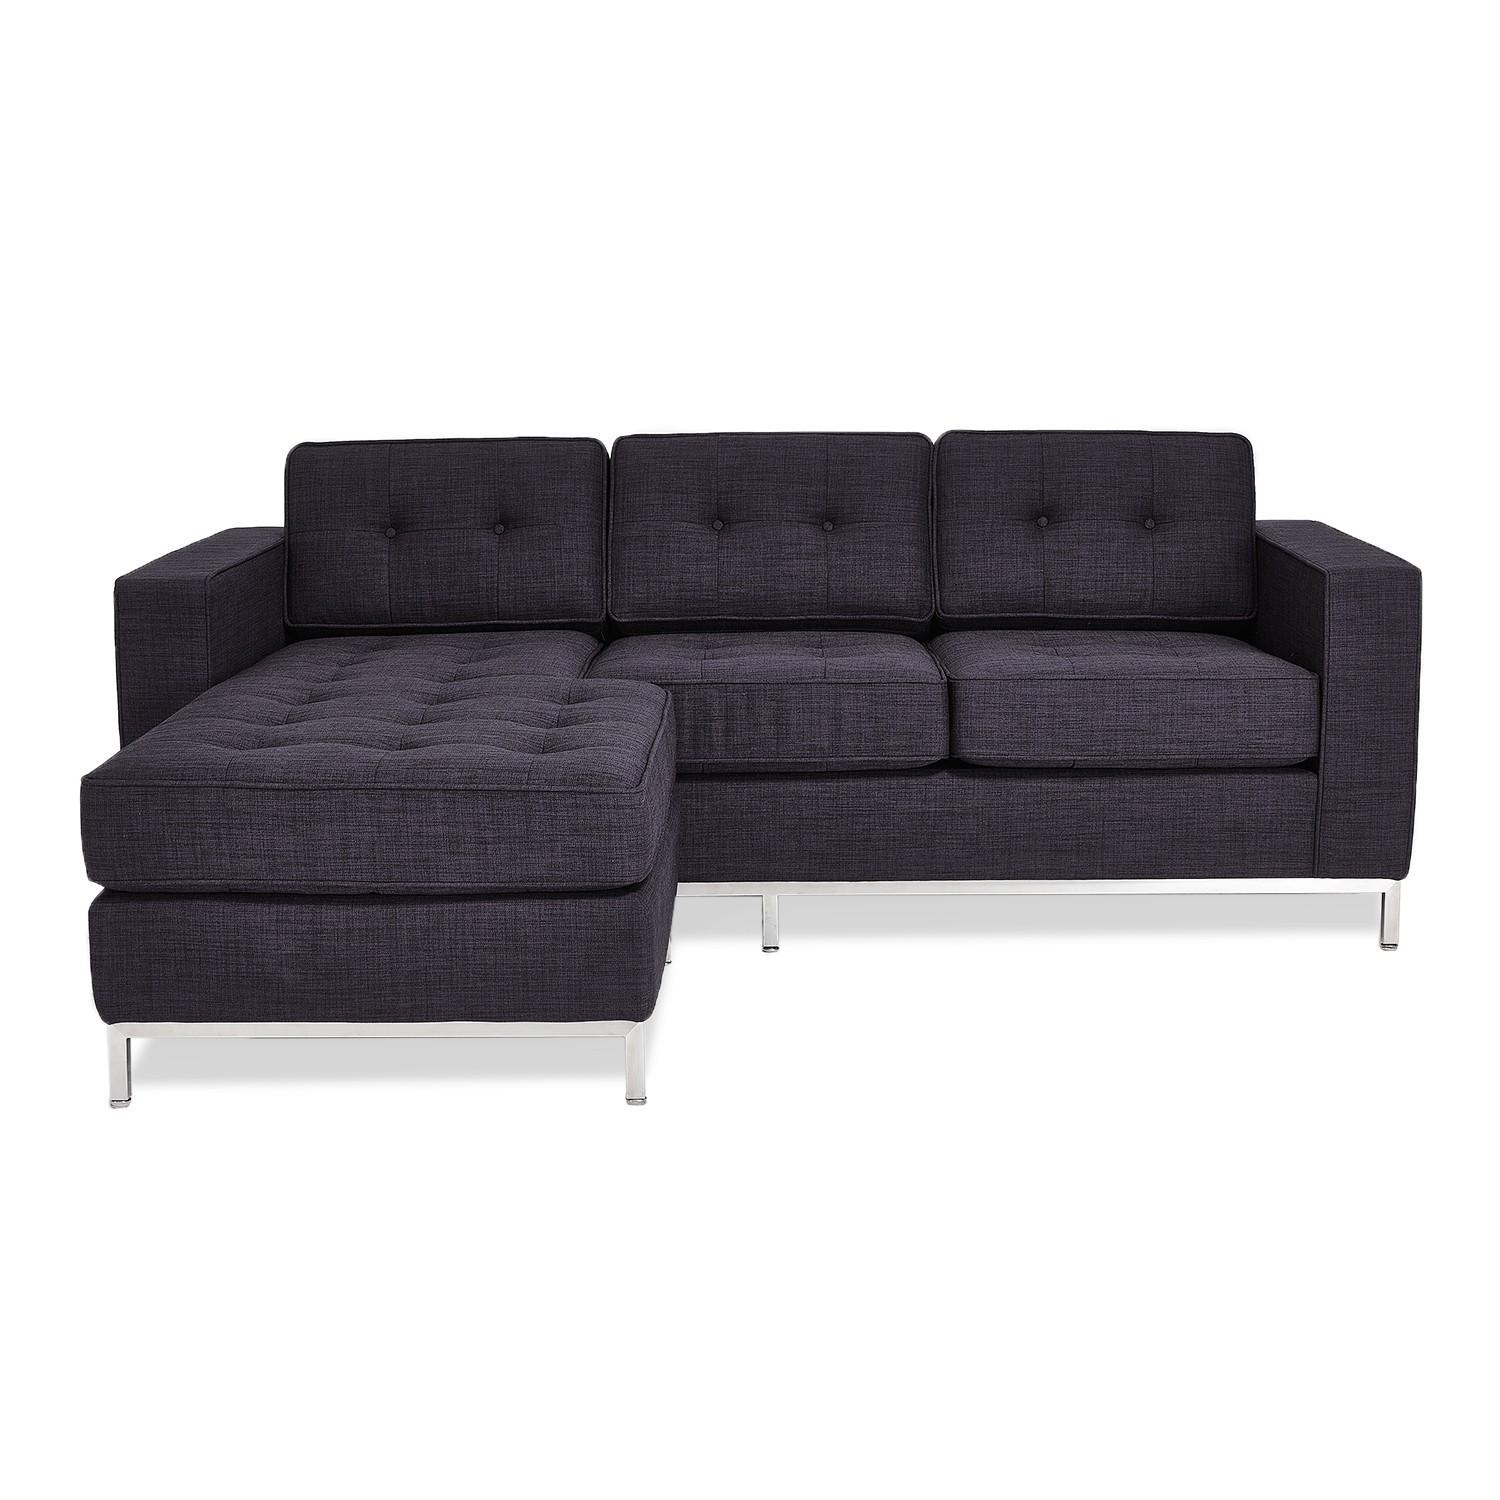 Gus* Modern Jane Loft Bi Sectional – Abc Carpet & Home With Regard To Jane Bi Sectional Sofa (Image 8 of 20)